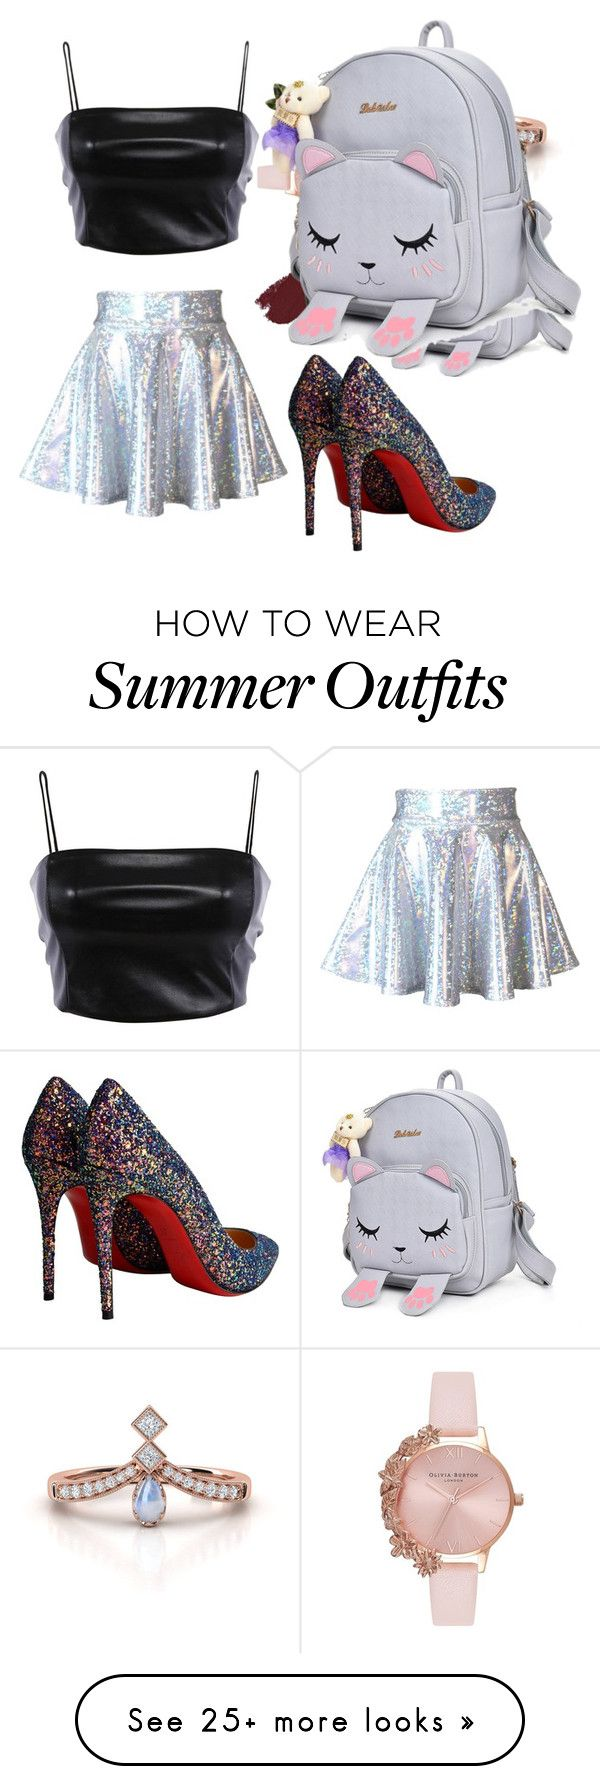 """""""My First Polyvore Outfit"""" by ma-denise-rogando on Polyvore featuring Christian Louboutin, Olivia Burton, Dolce&Gabbana and L.A. Girl"""